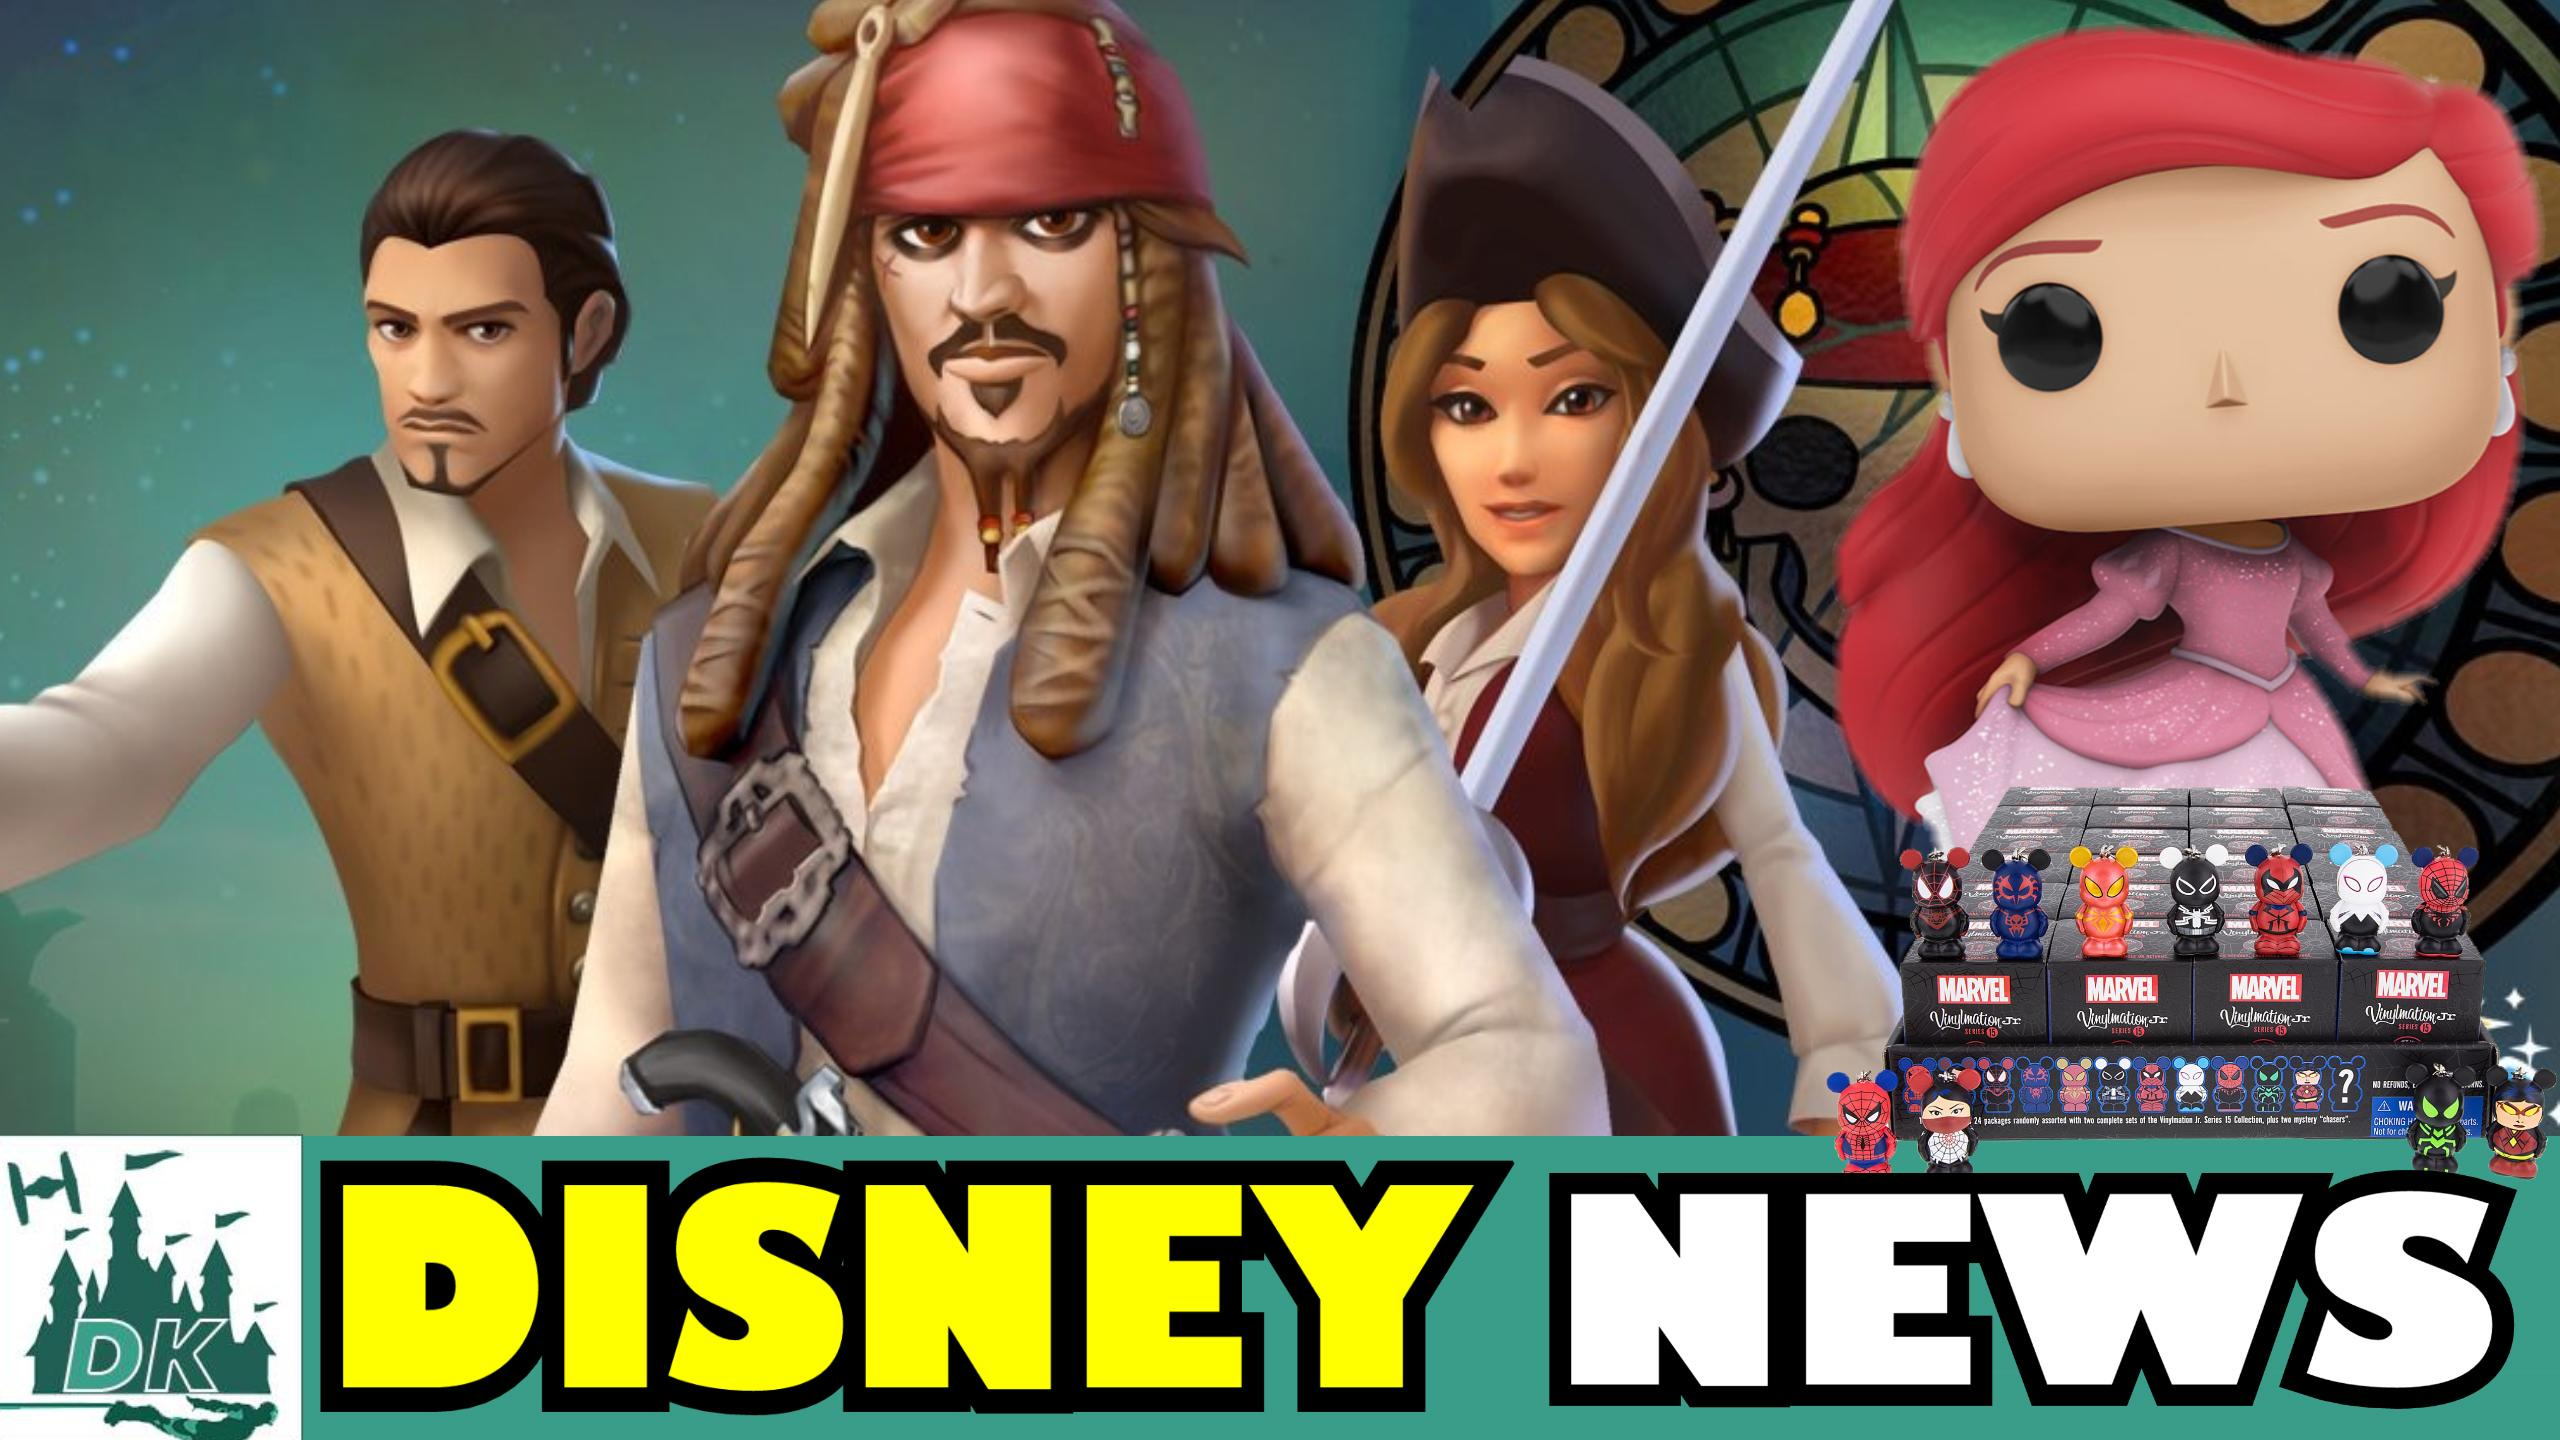 Spider-Man Vinylmation Juniors + POTC Comes To Disney Magic Kingdoms | DK Disney News